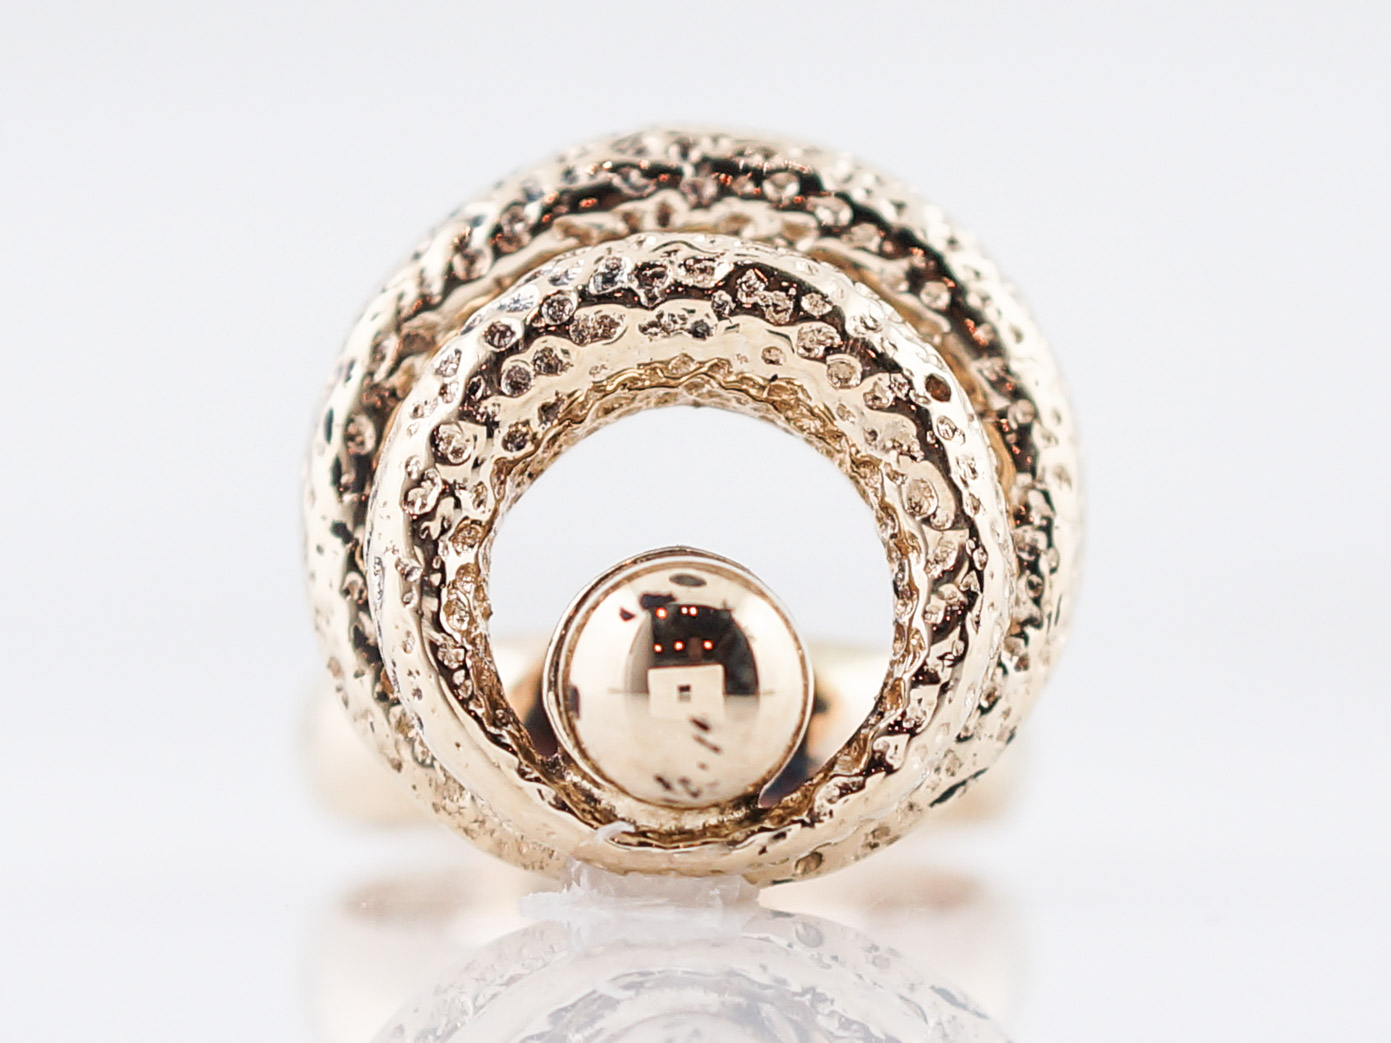 Vintage Spinning Right Hand Ring Retro in 14k Yellow Gold-94